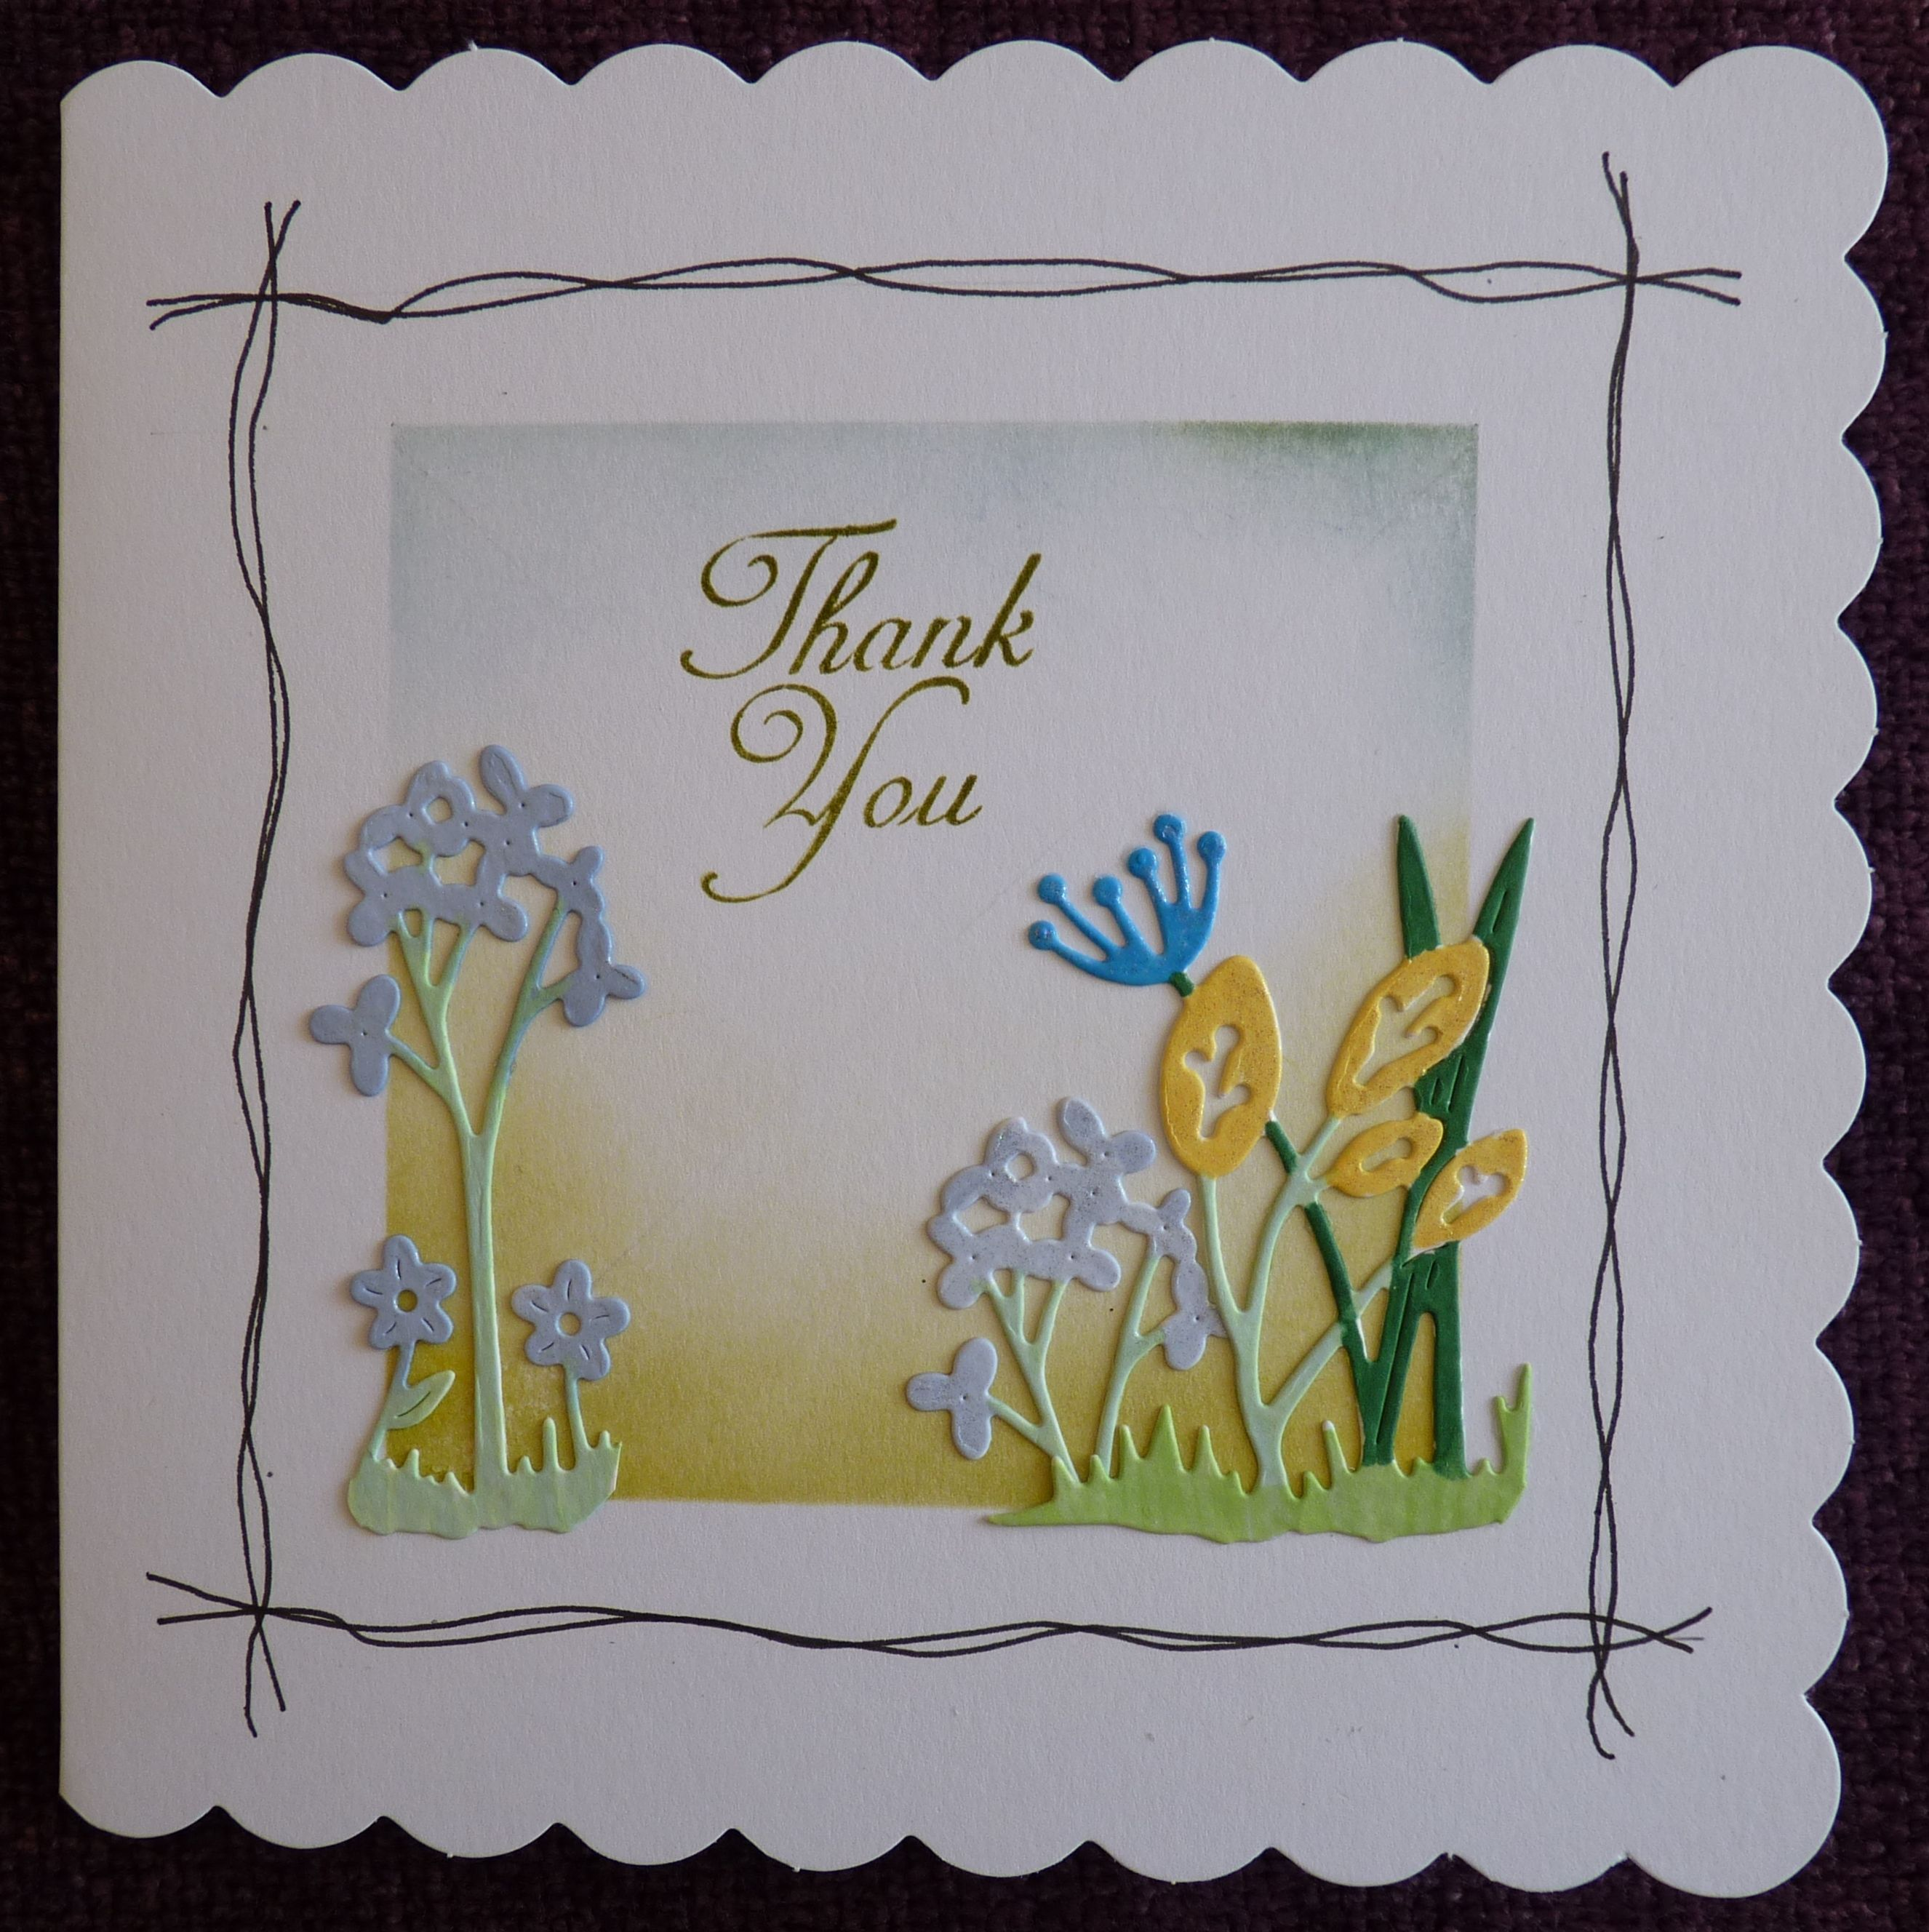 Thank You card 6 x 6 using Tattered Lace die.